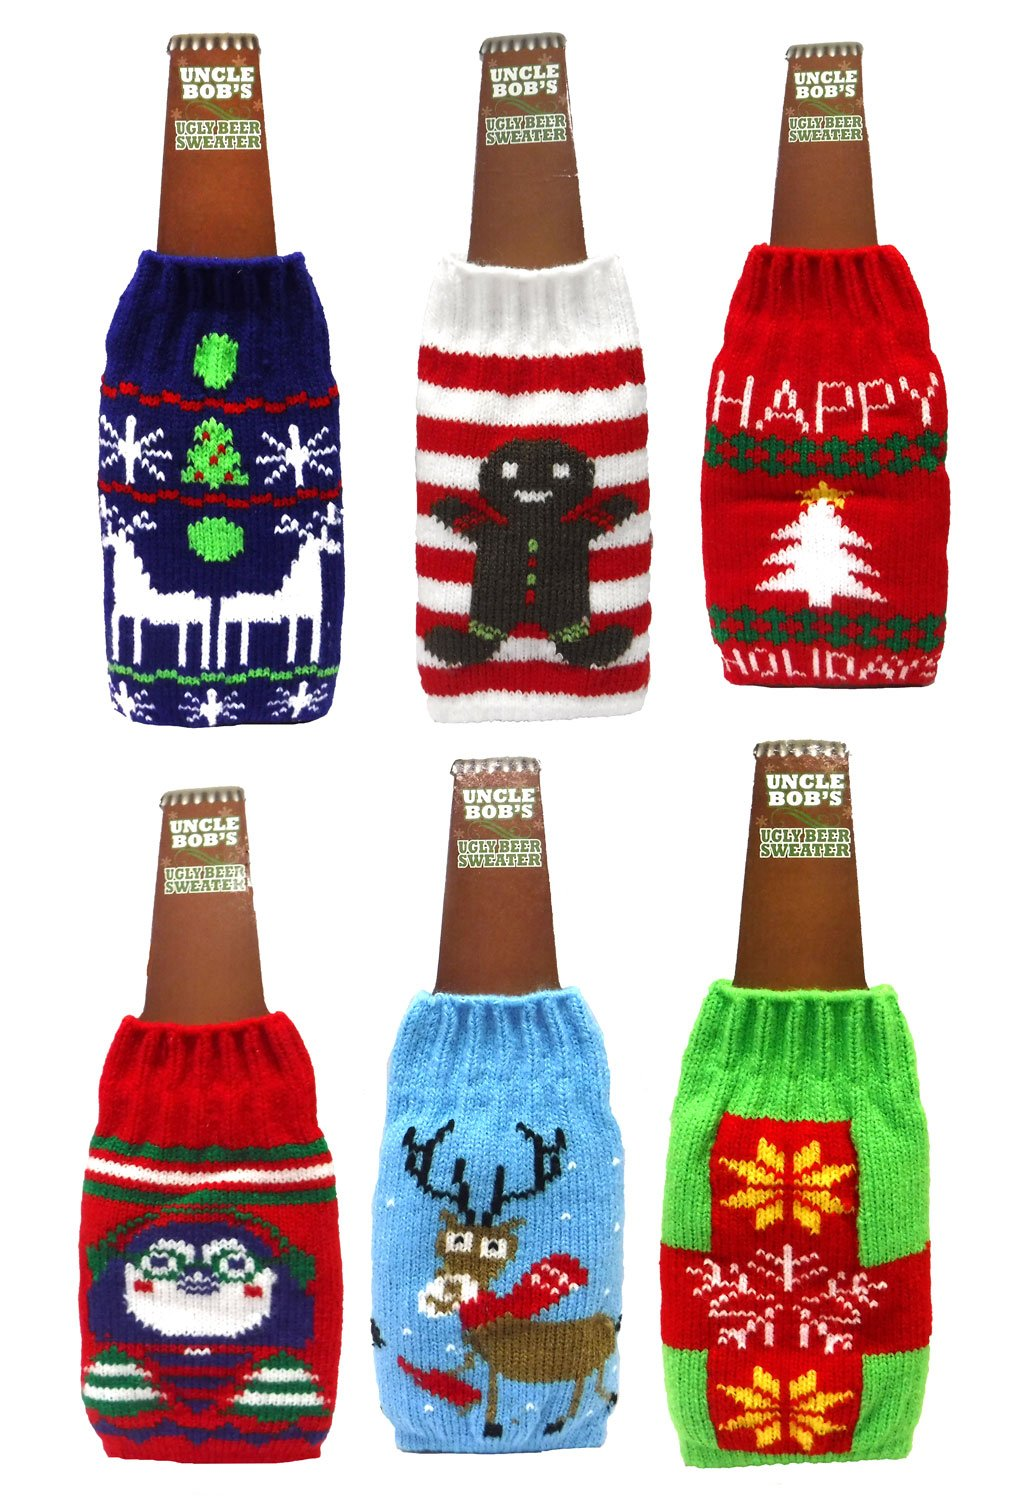 Uncle Bob's Ugly Beer Sweater Novelty Bottle Covers (Set of Six)